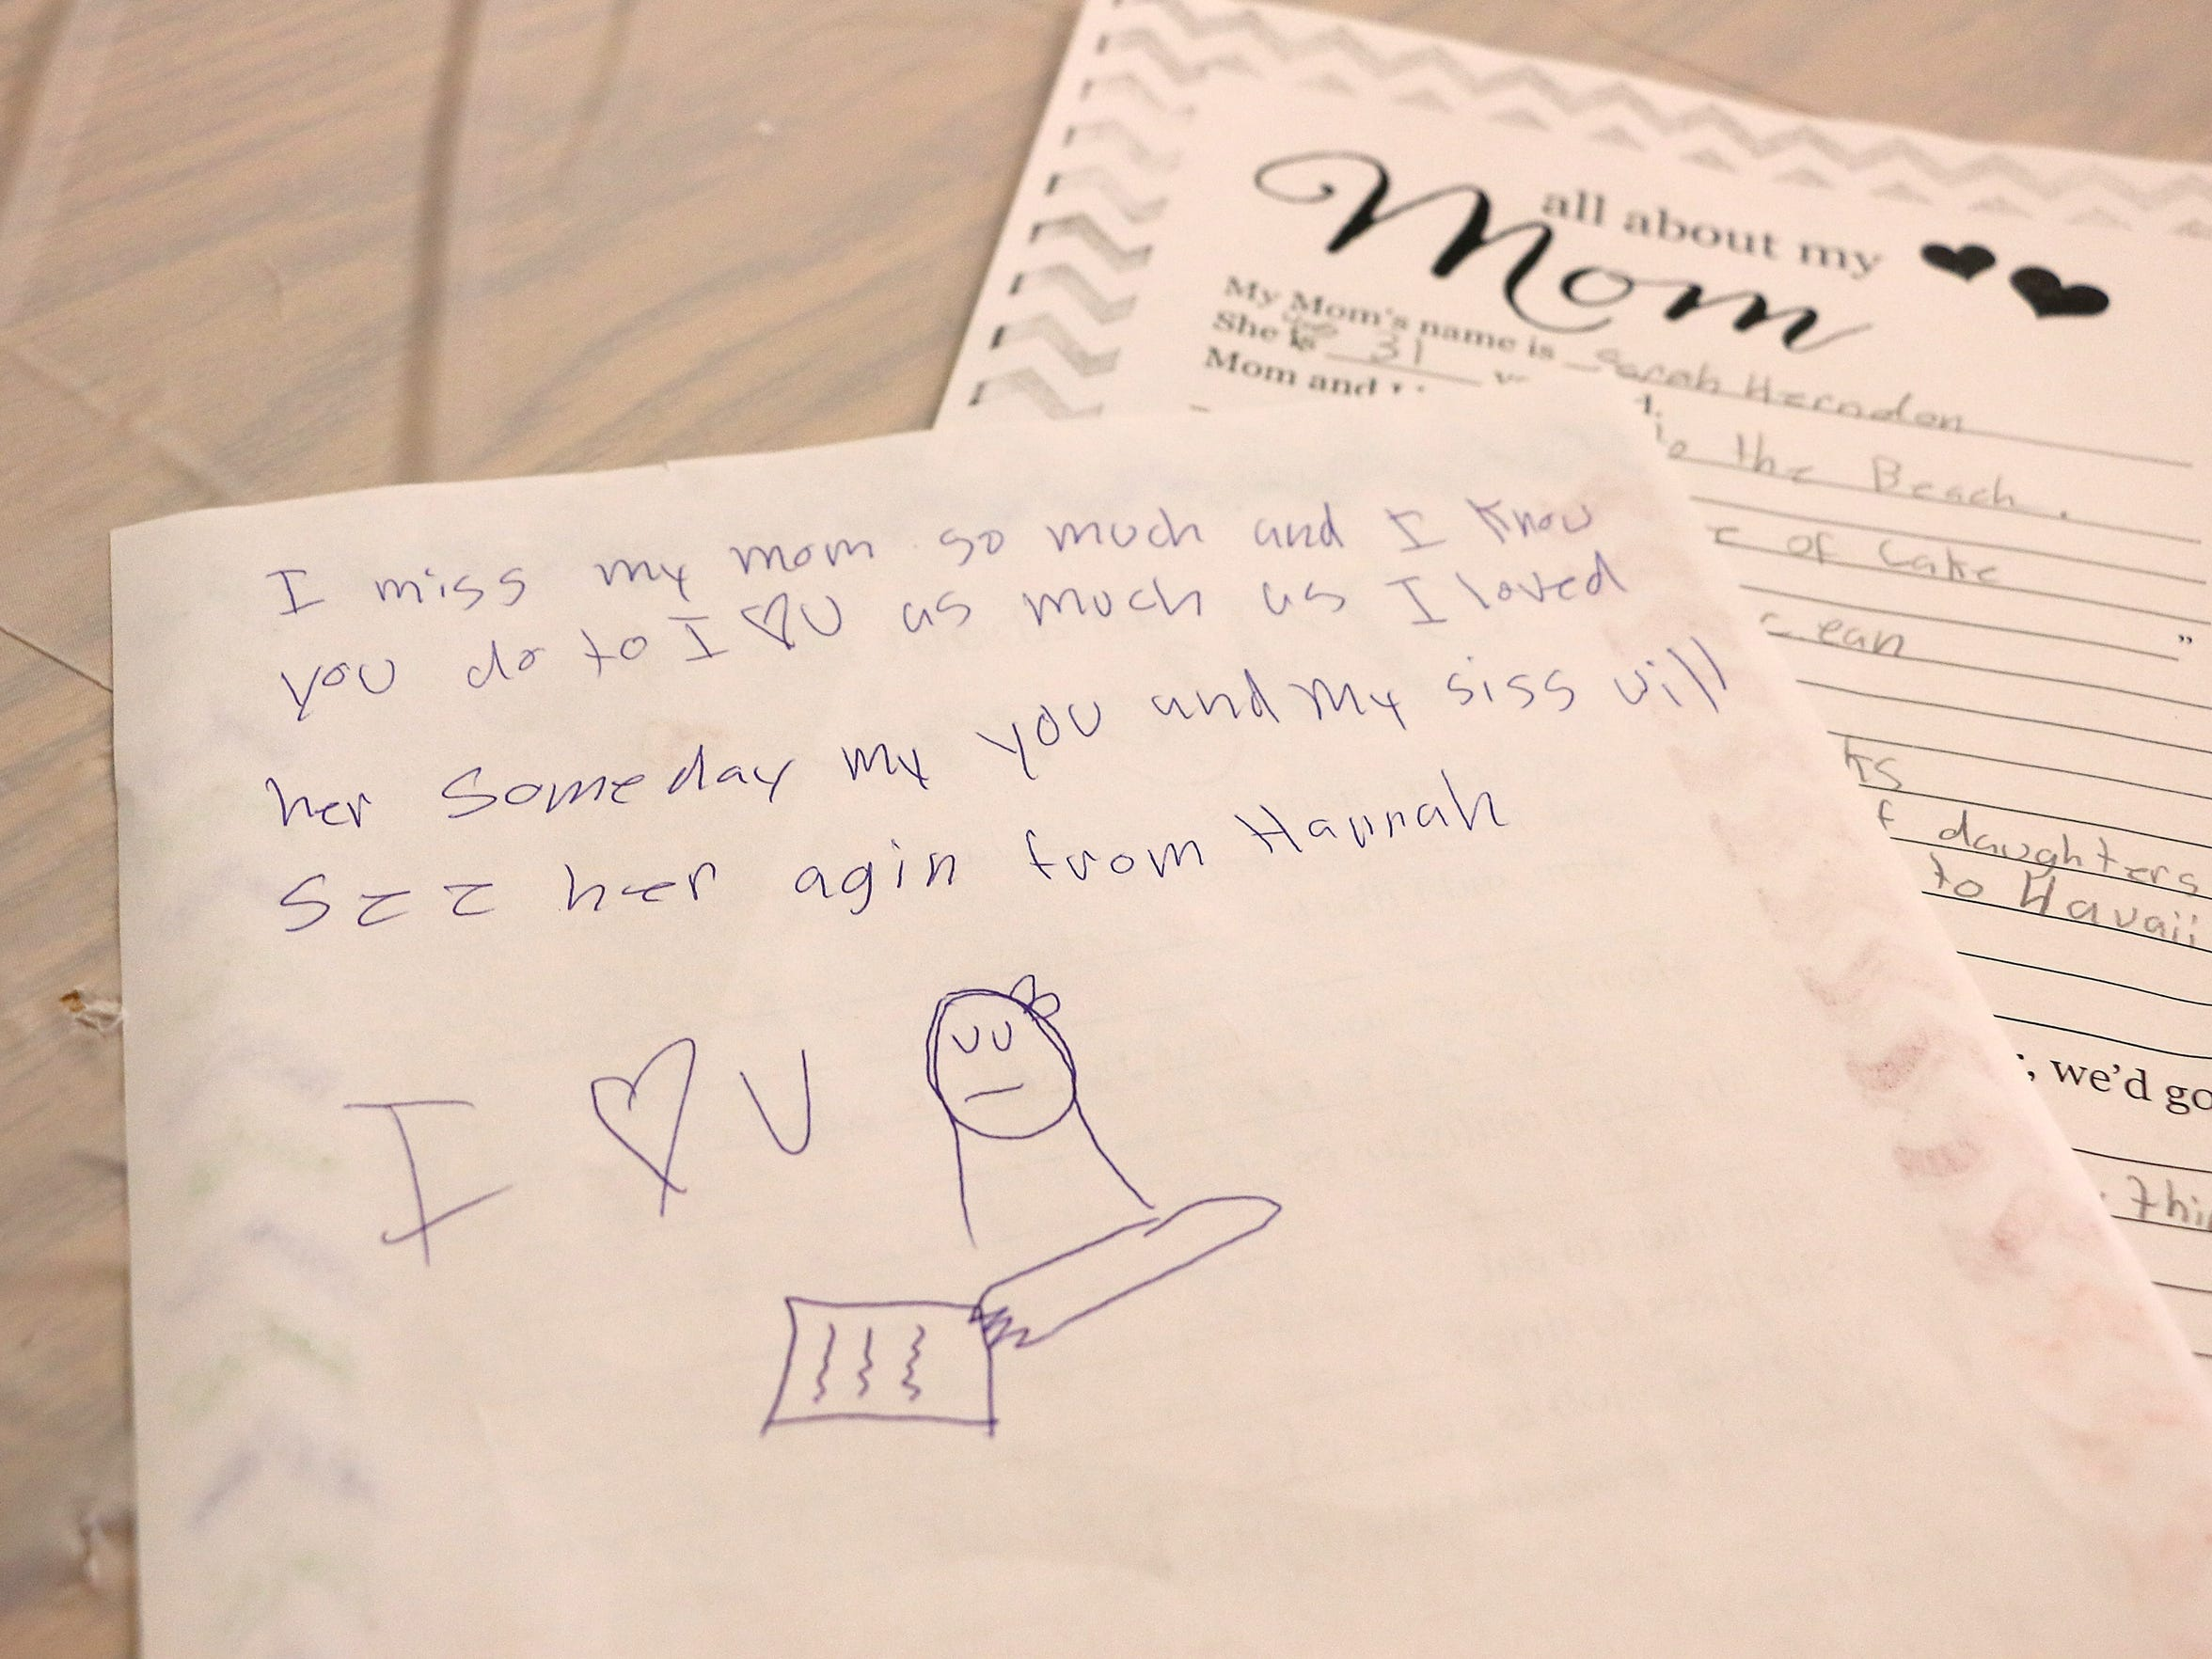 A note written by her granddaughter Hannah to Cathy Taylor is seen during a Mother's Day brunch at the Doral Academy in Reno on May 8, 2018. Taylor's daughter, Hannah's mom, died of cancer this past January.